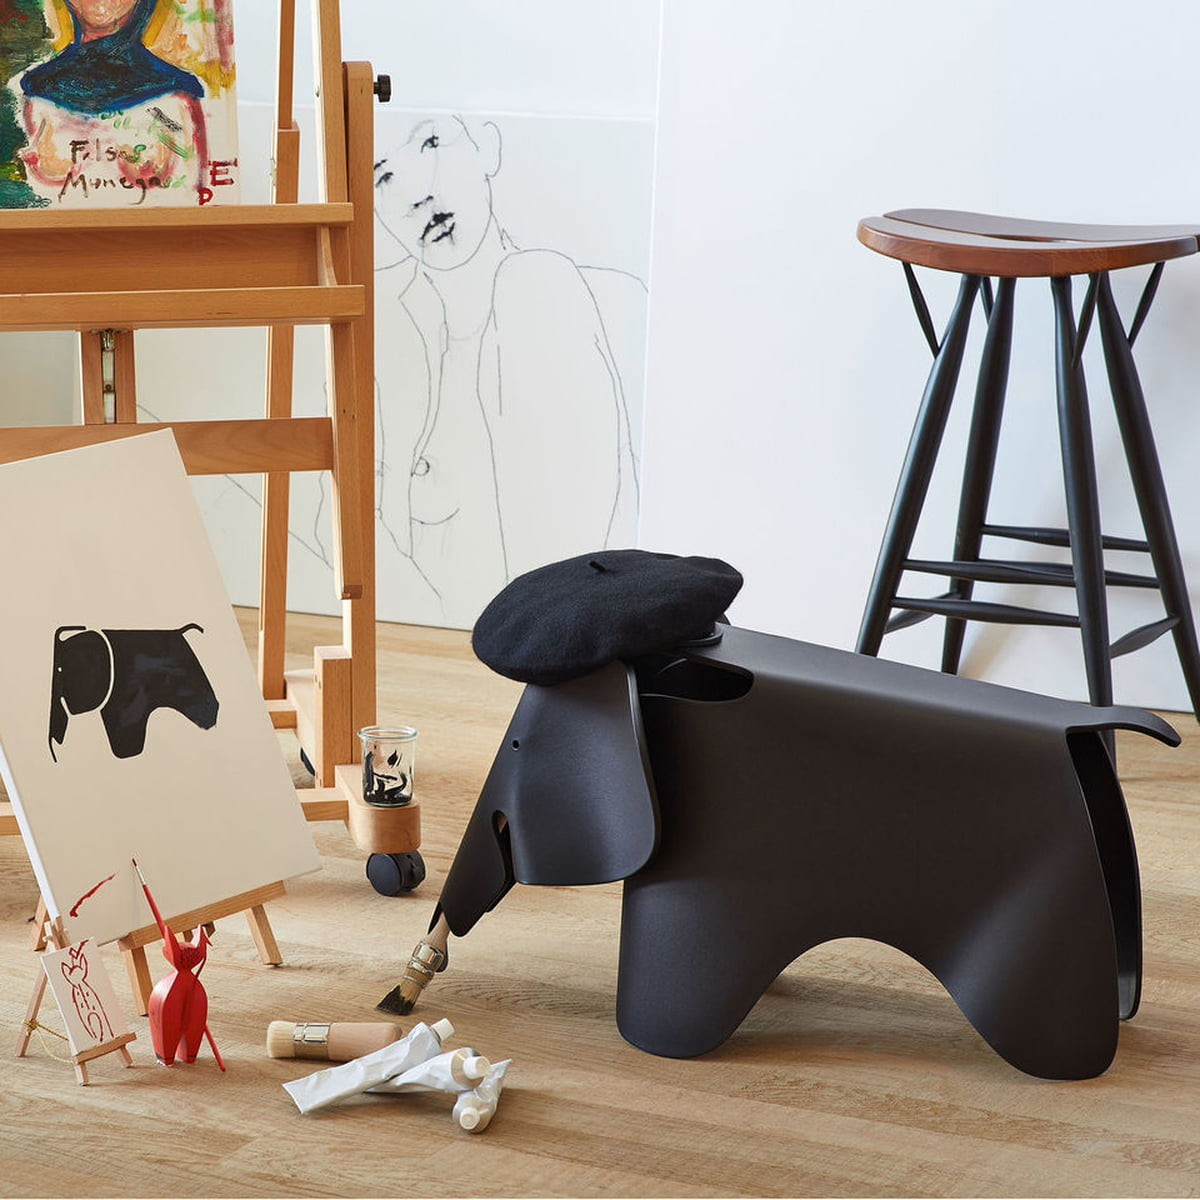 Eames Elephant By Vitra In The Shop